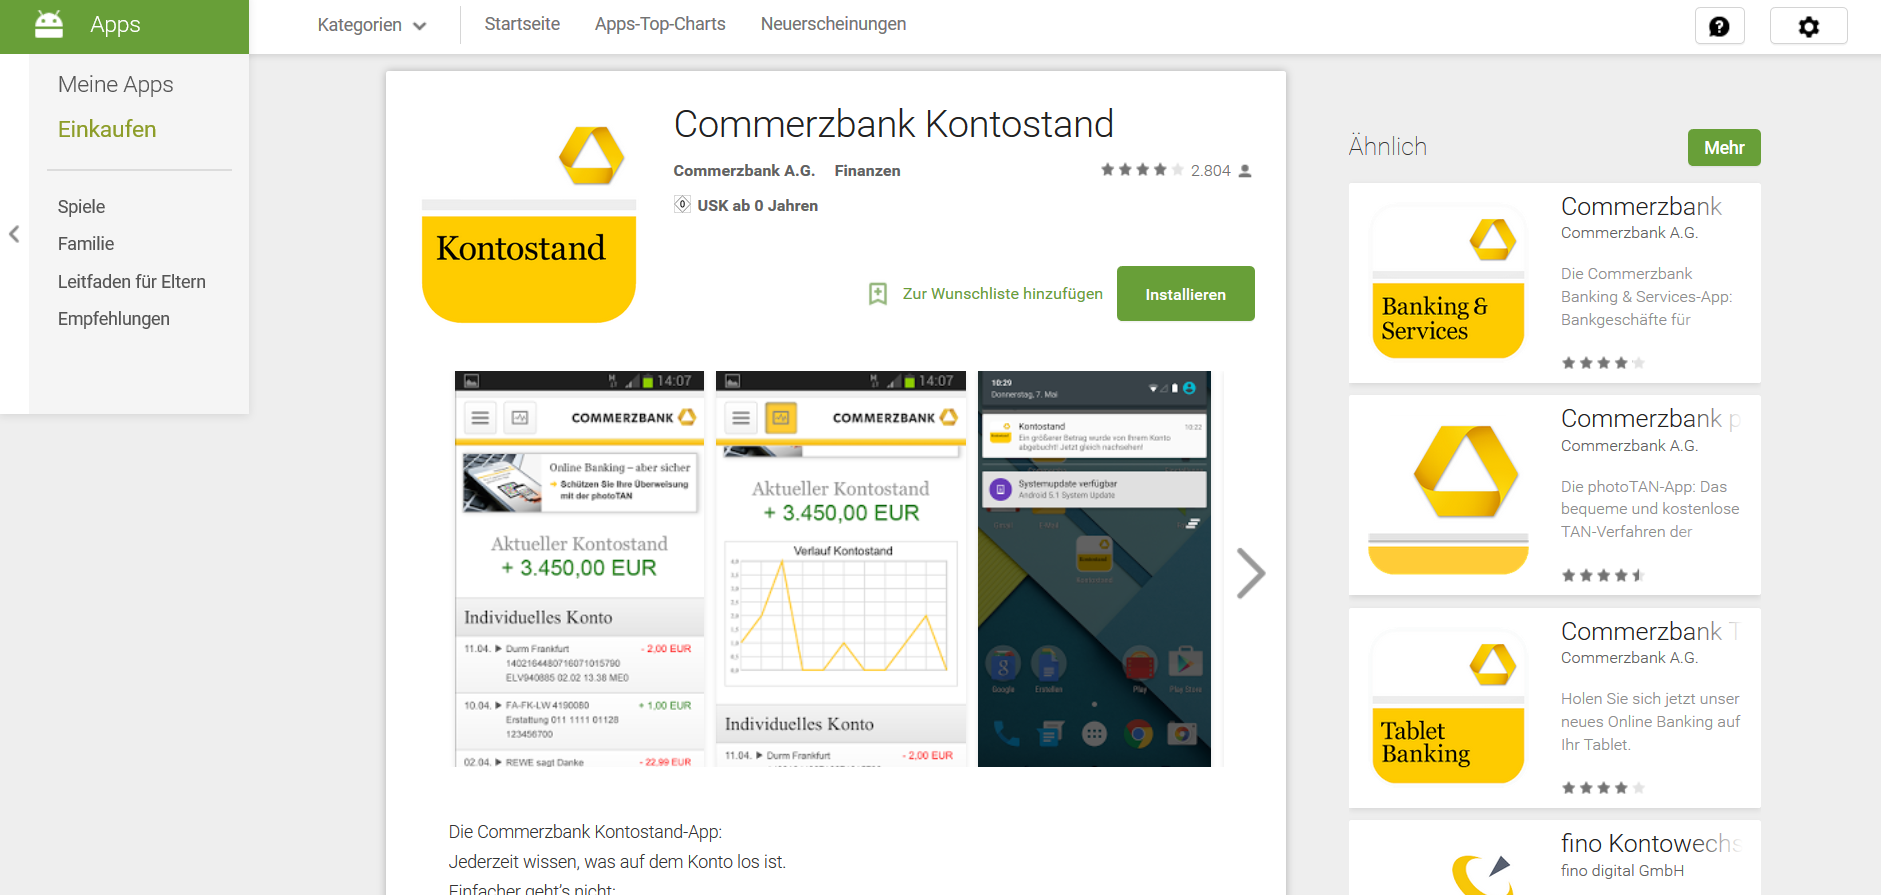 Commerzbank Kontostand im Google Play Store